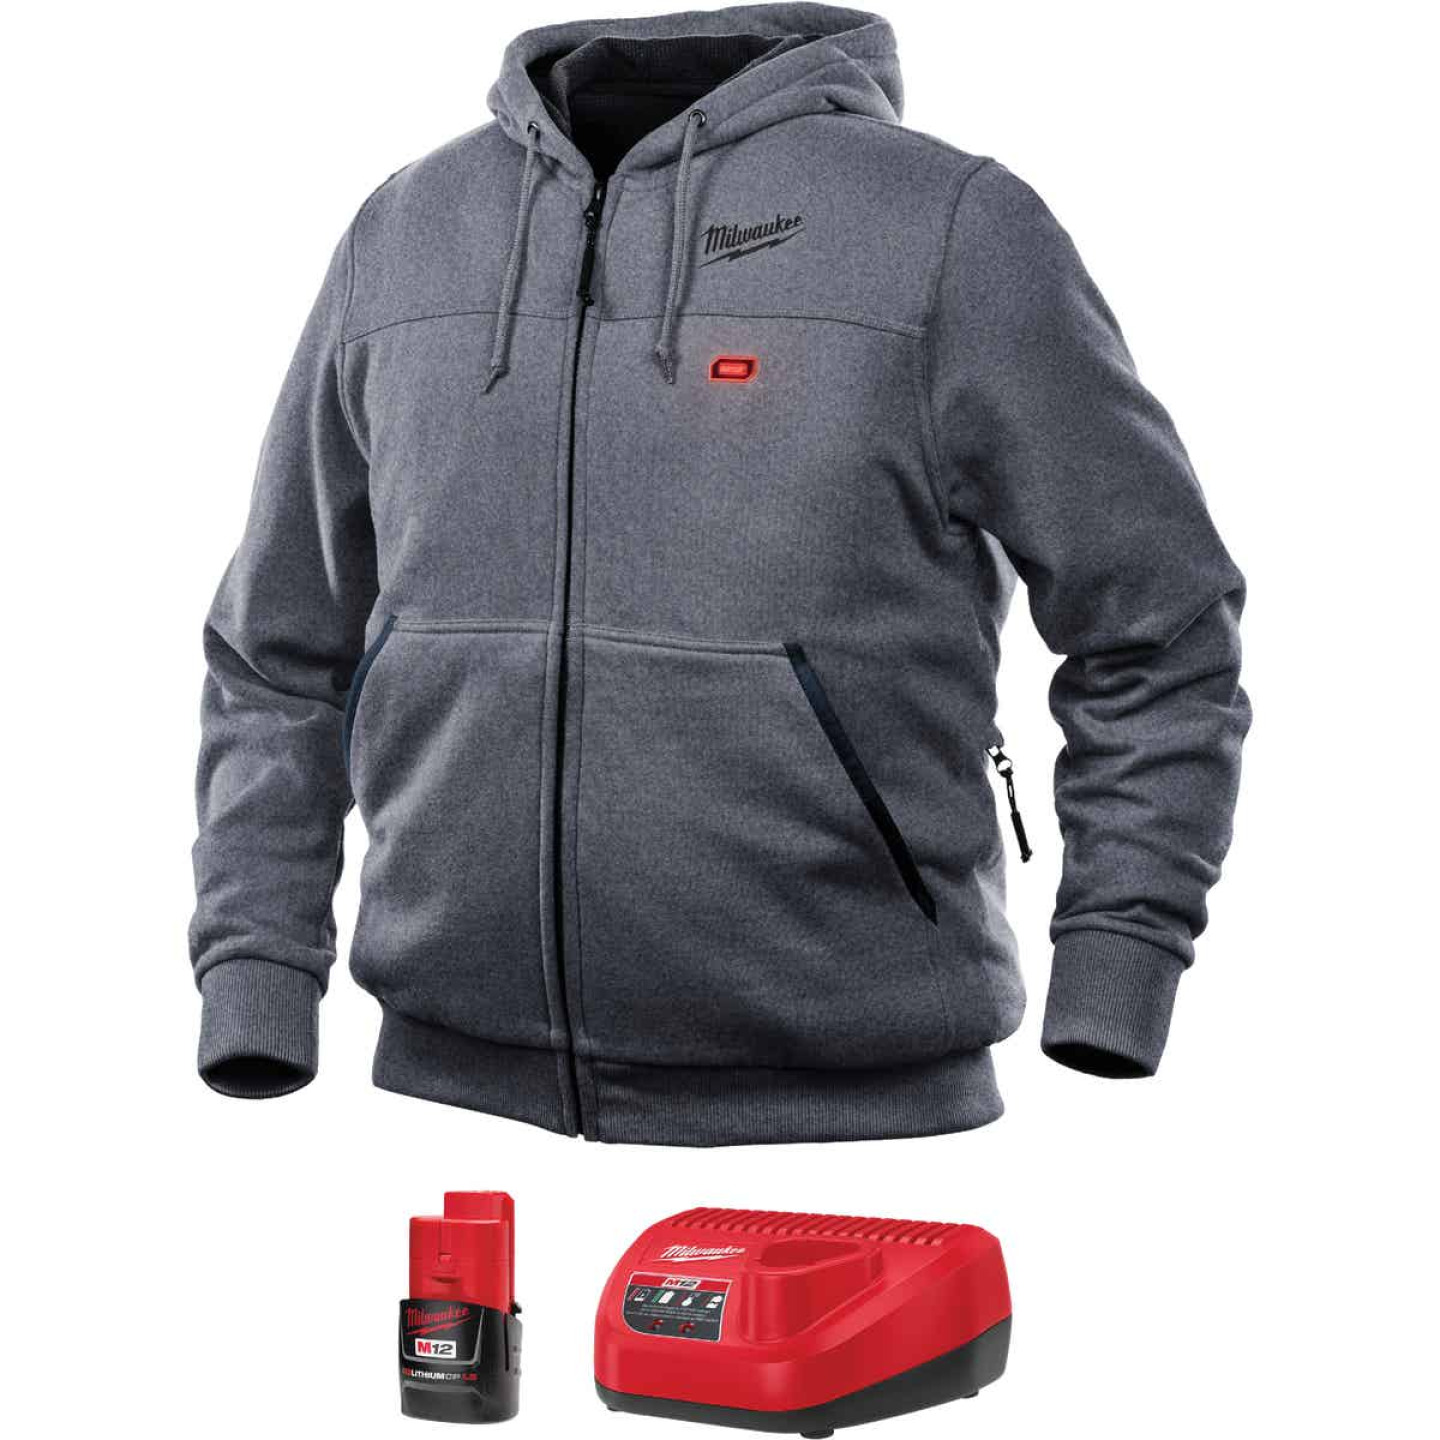 Milwaukee M12 XL Gray Men's Heated Full Zip Hooded Sweatshirt Image 1